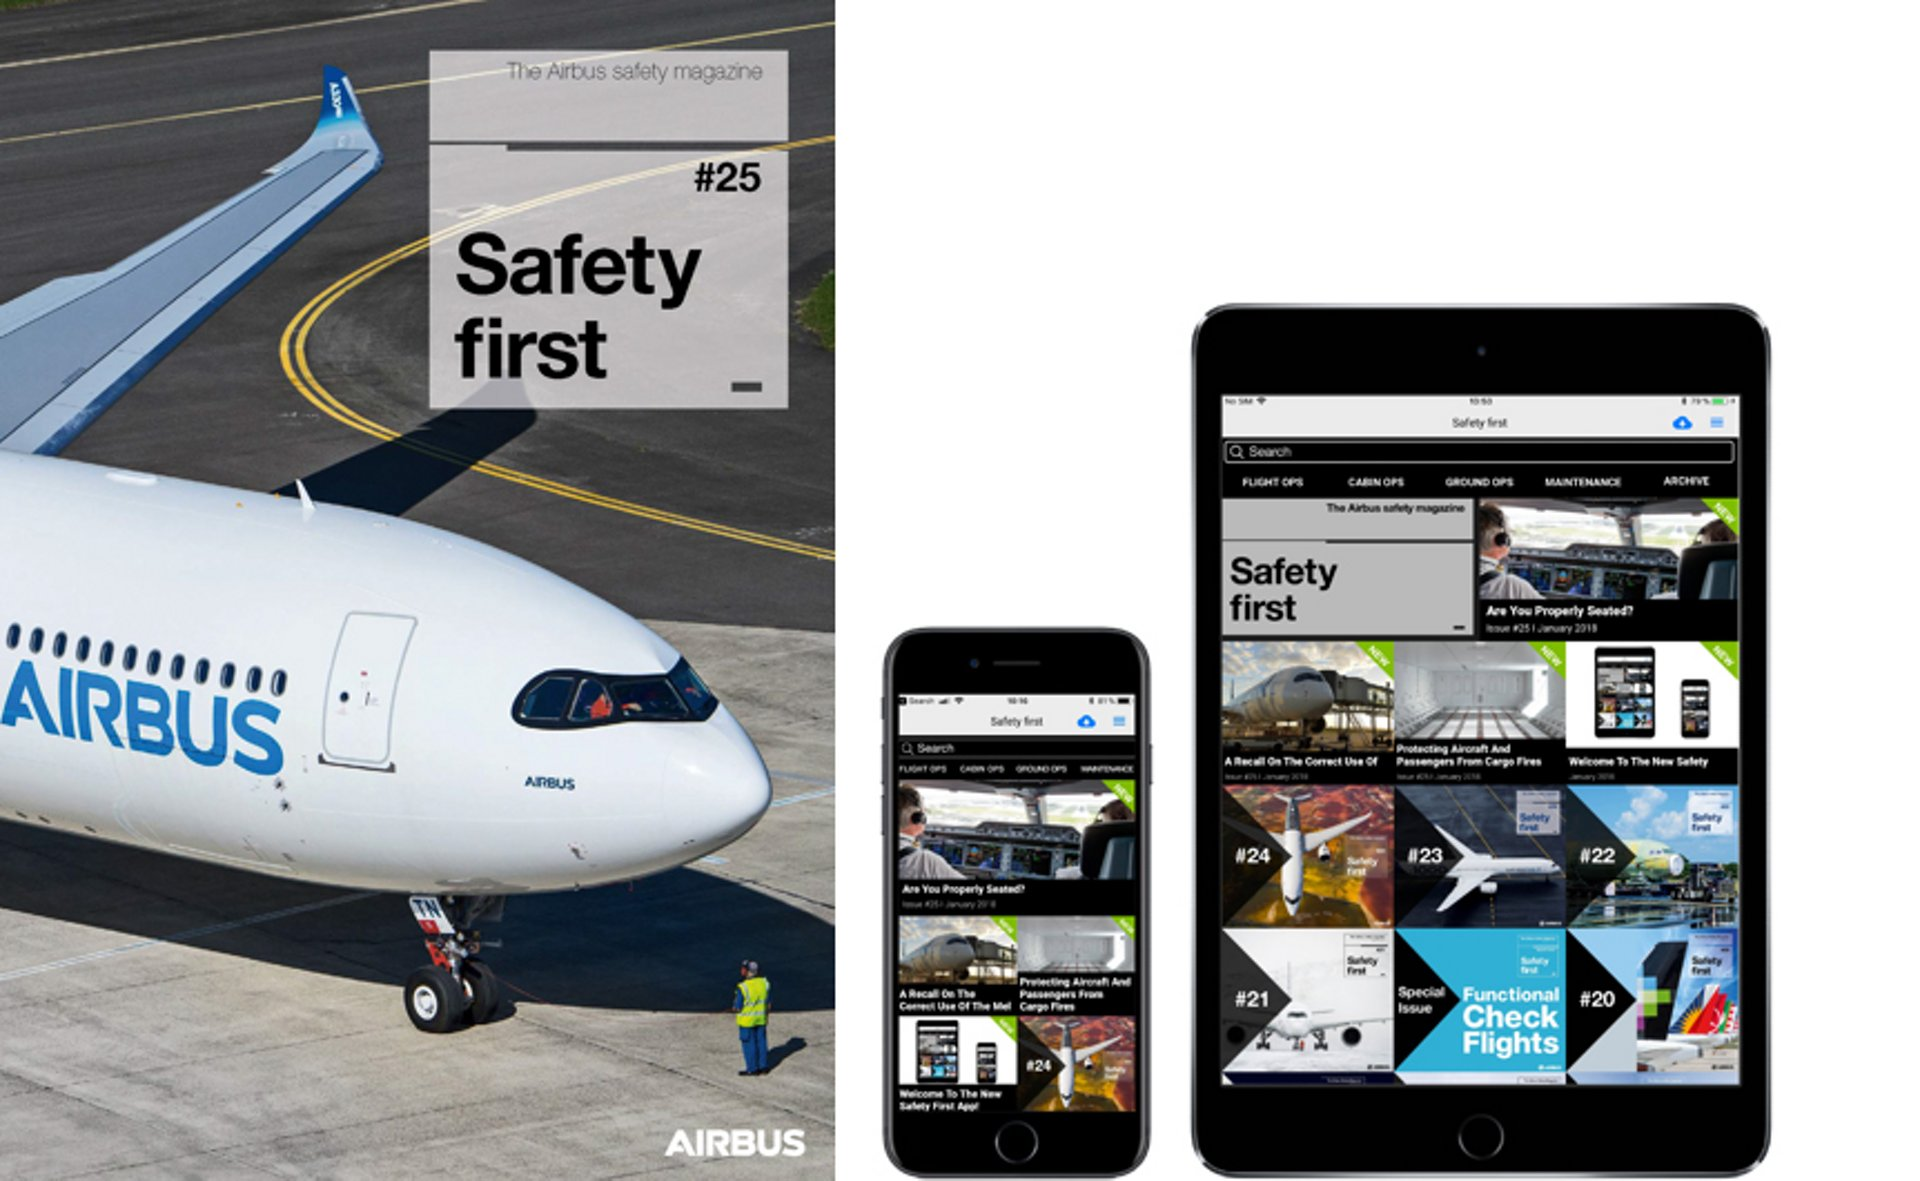 Airbus safety app